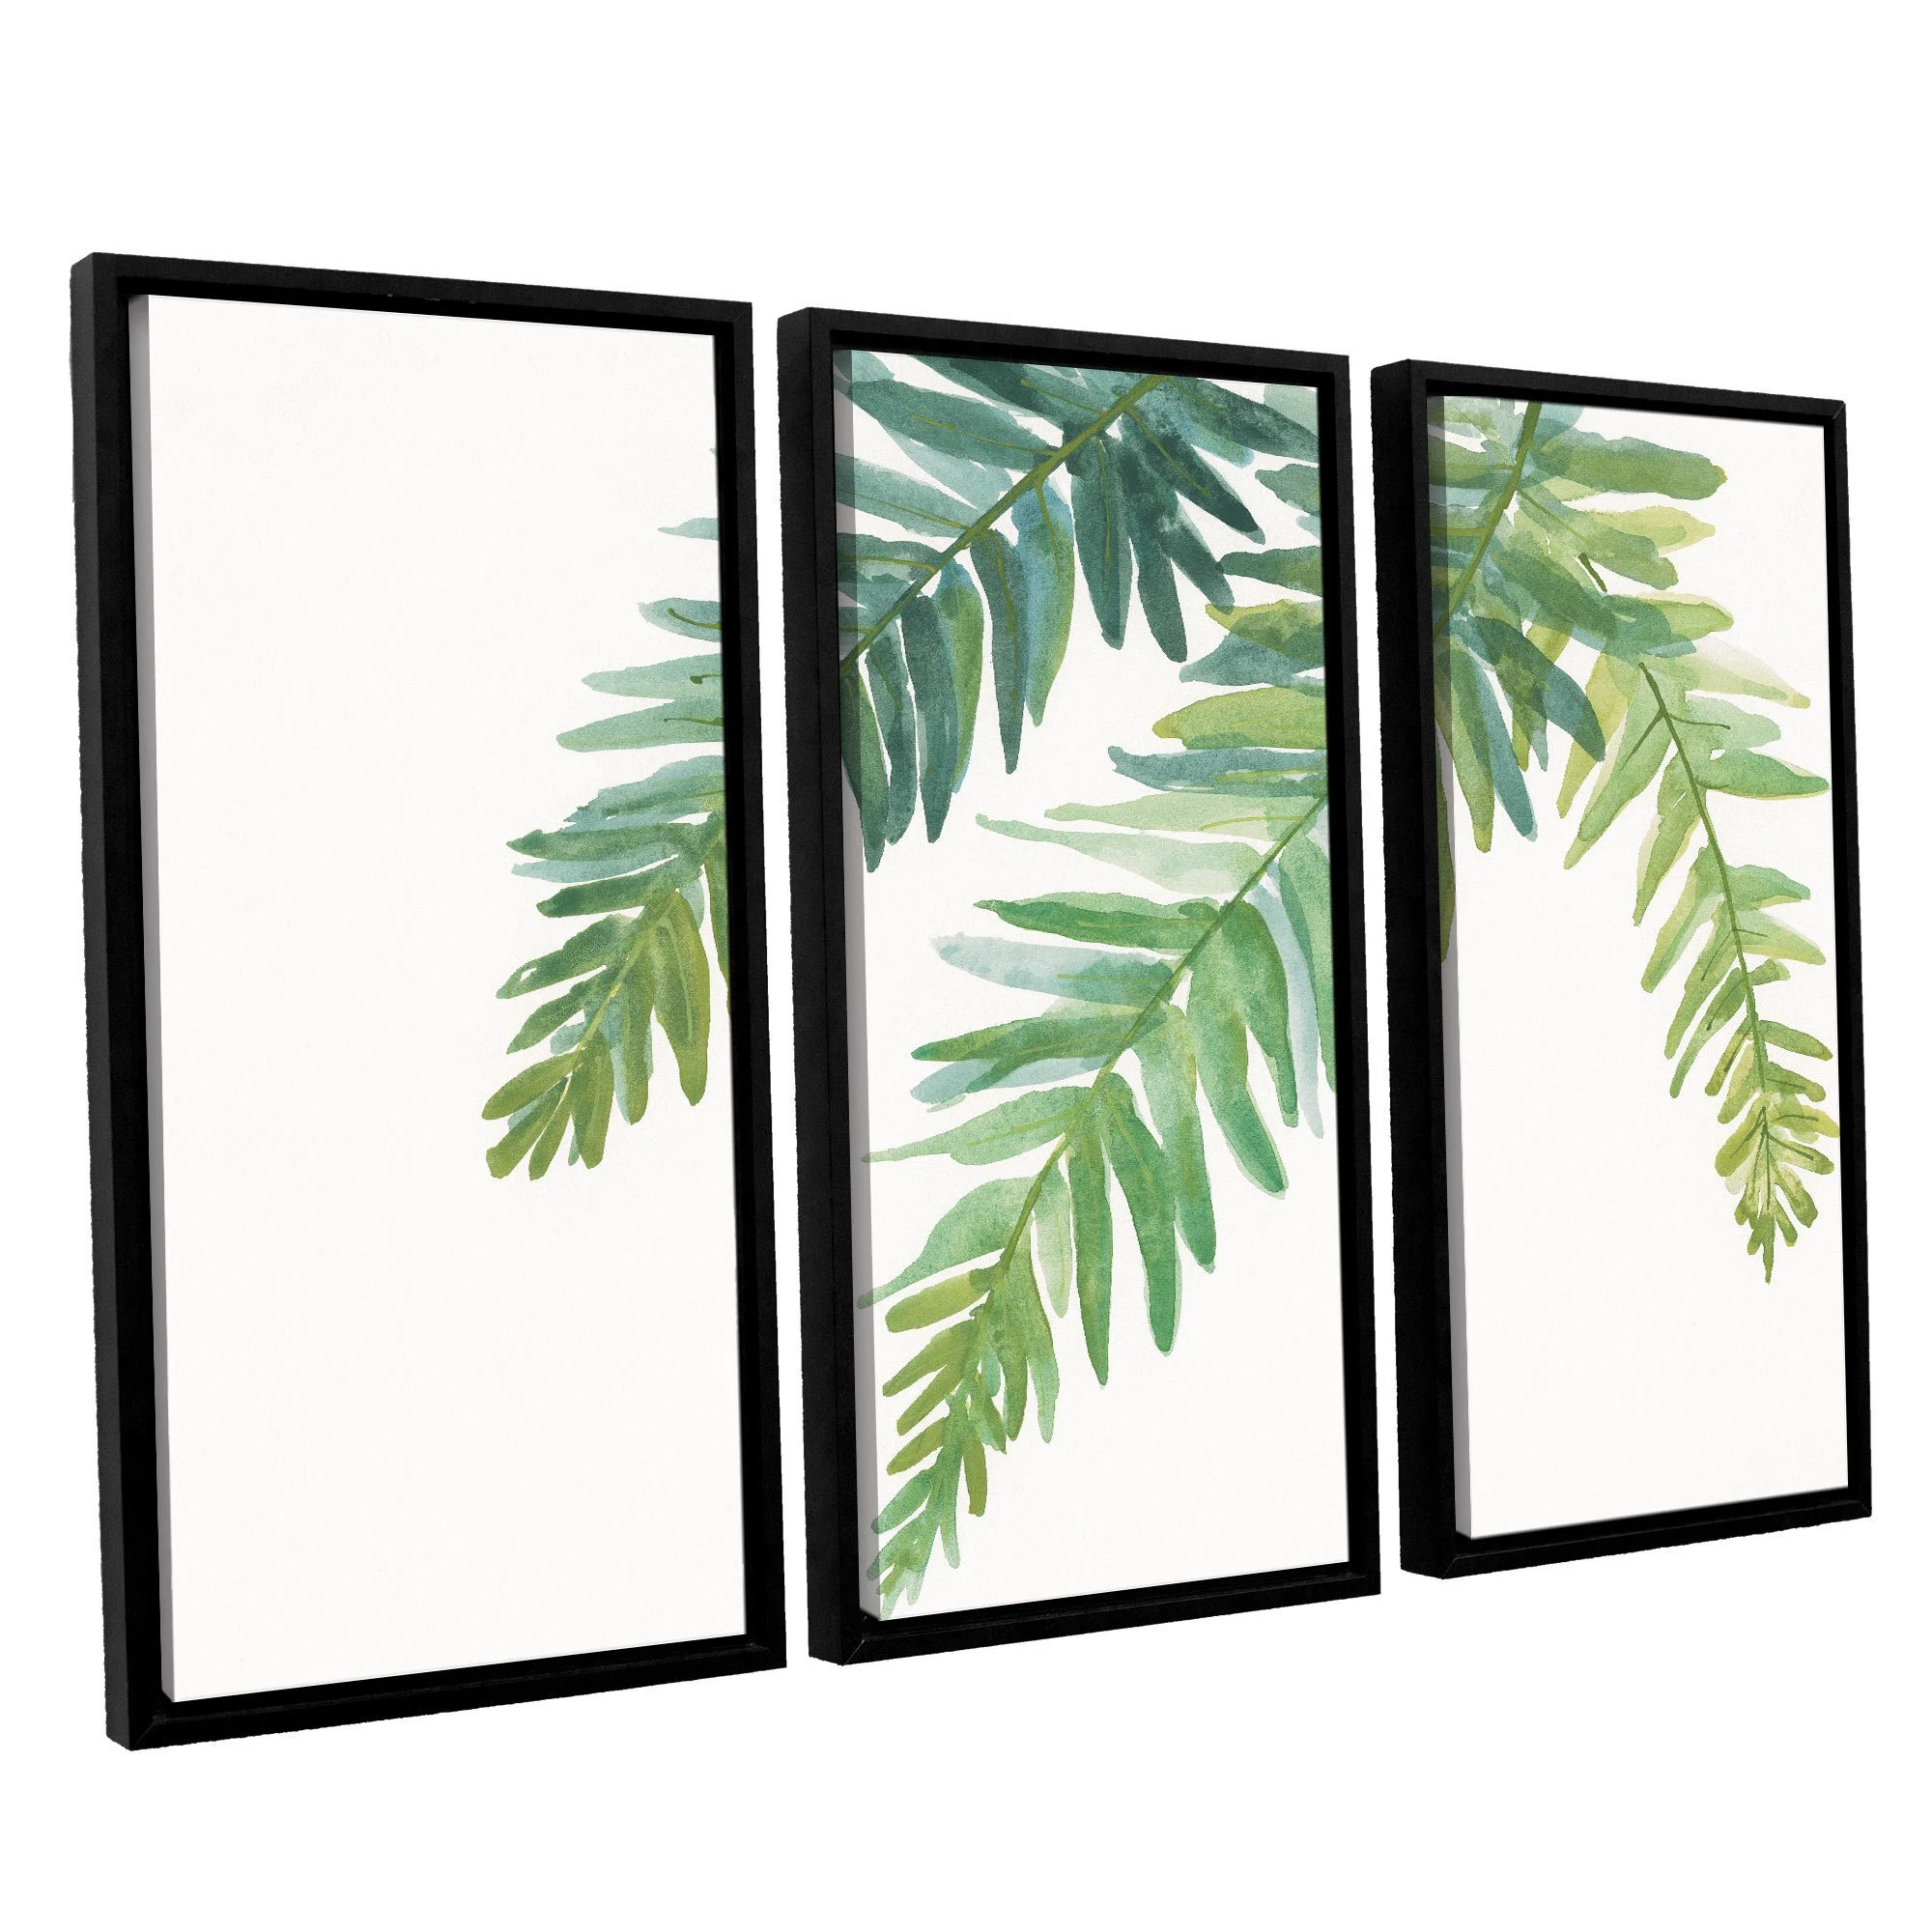 Chris Paschke's 'Ferns I' 3 Piece Floater Framed Canvas Set